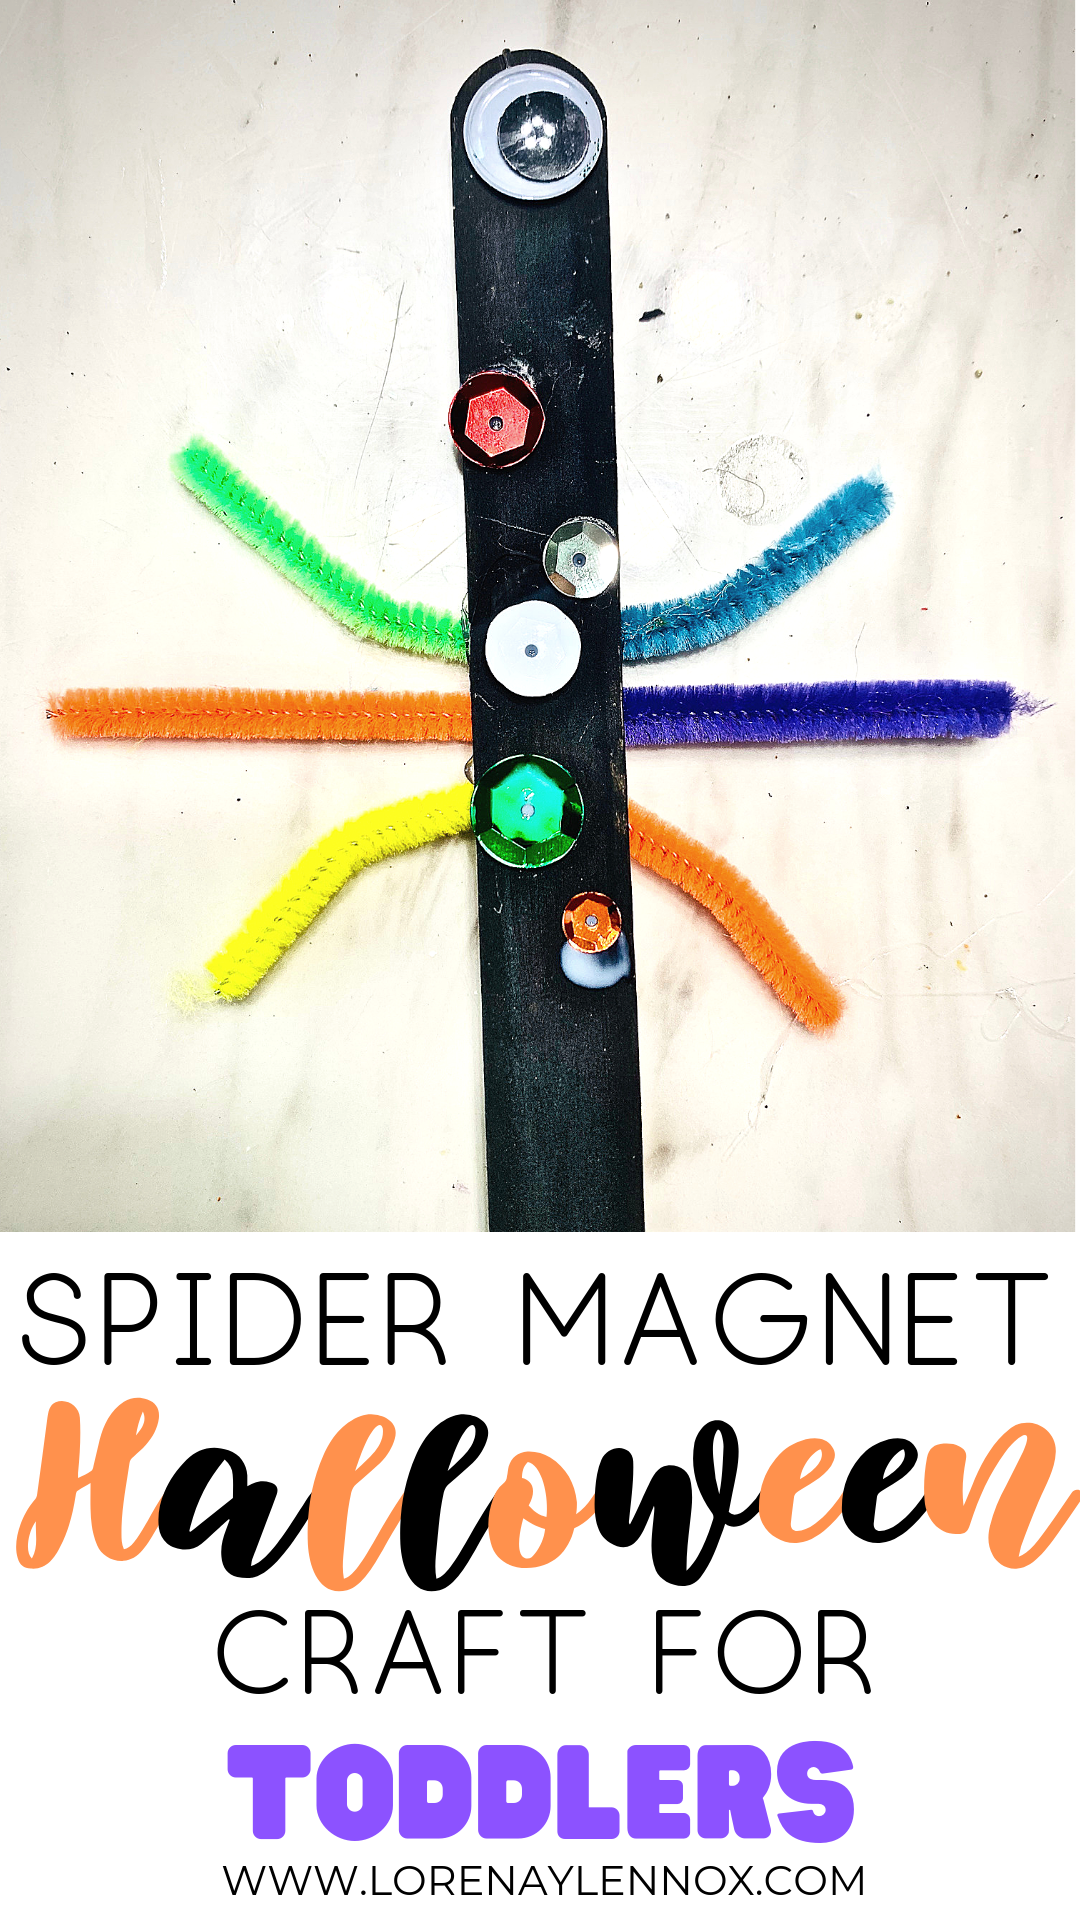 Spider Magnet Halloween Craft for Toddlers